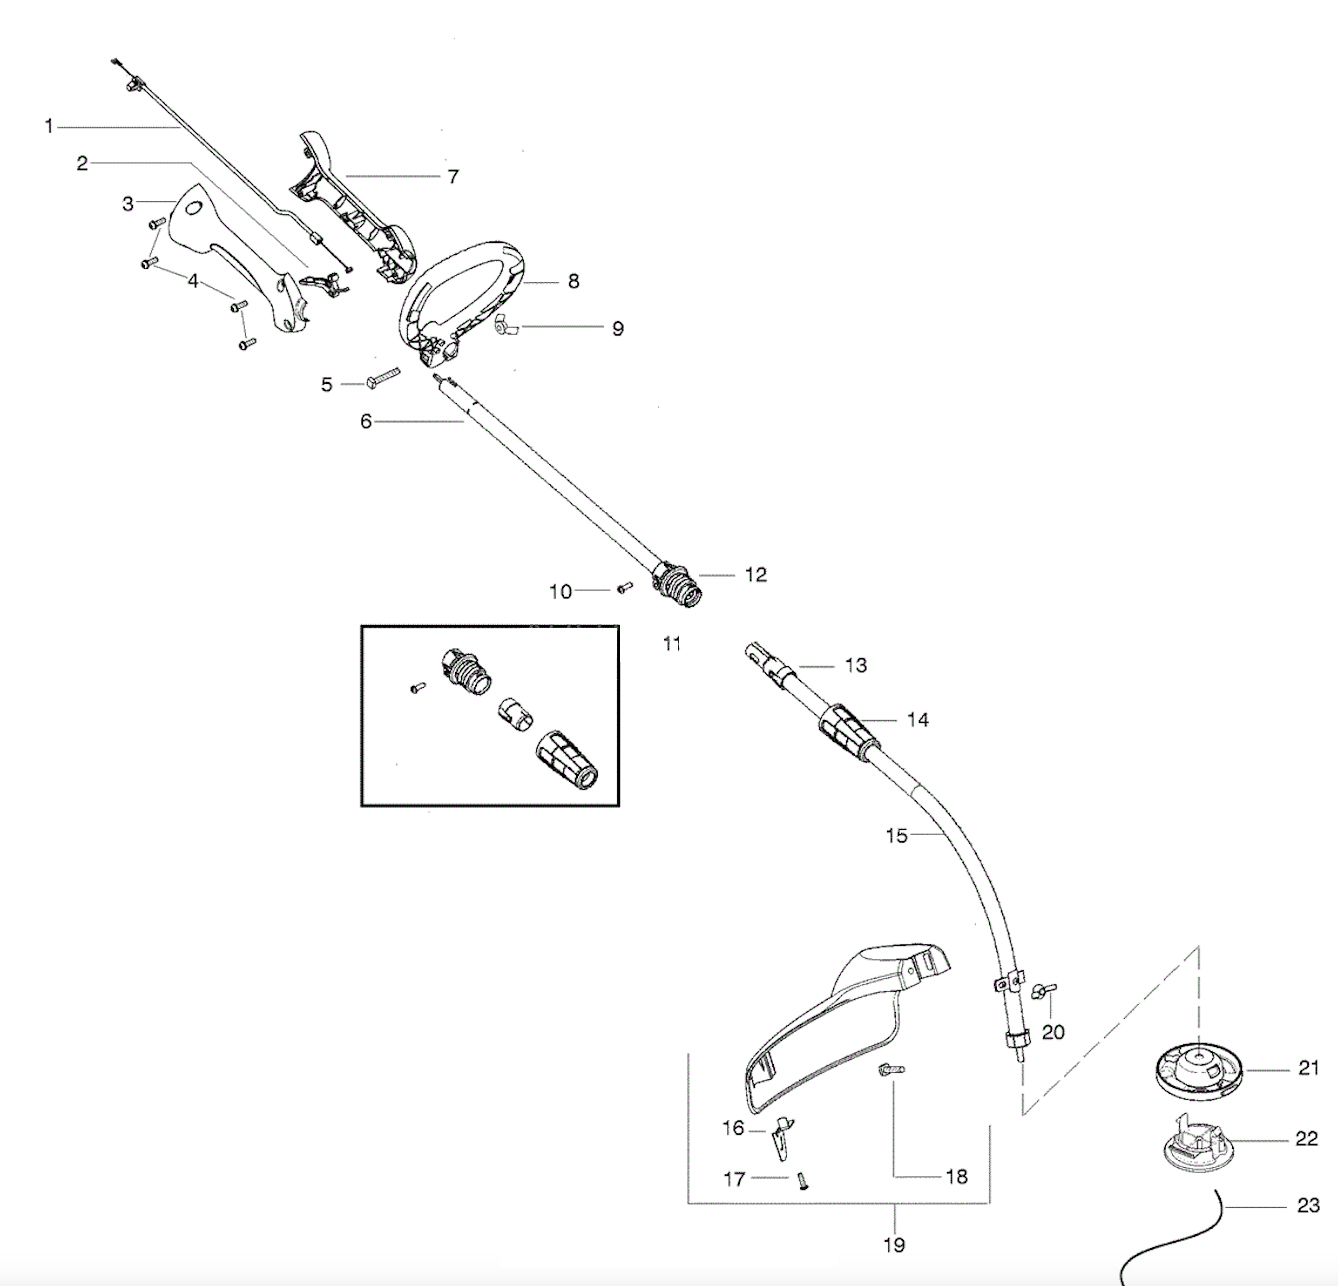 weed eater fuel line replacement diagram 98 ford mustang radio wiring w25cfk handle parts weedeater featherlite